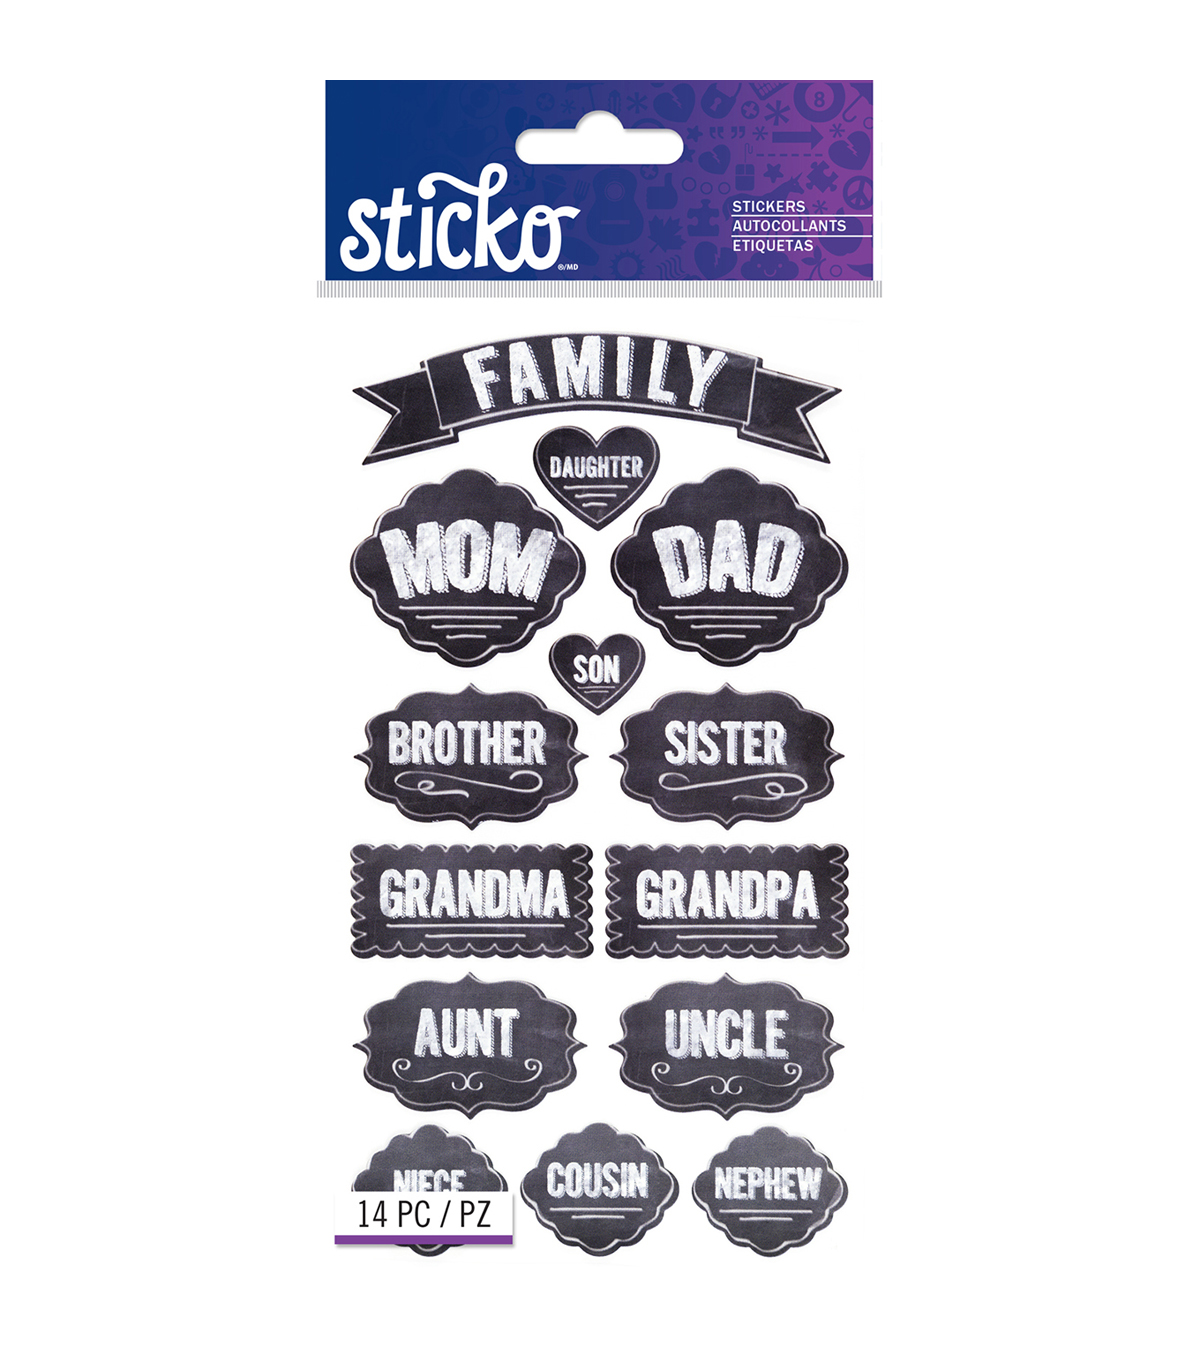 Sticko Chalk Stickers - Family